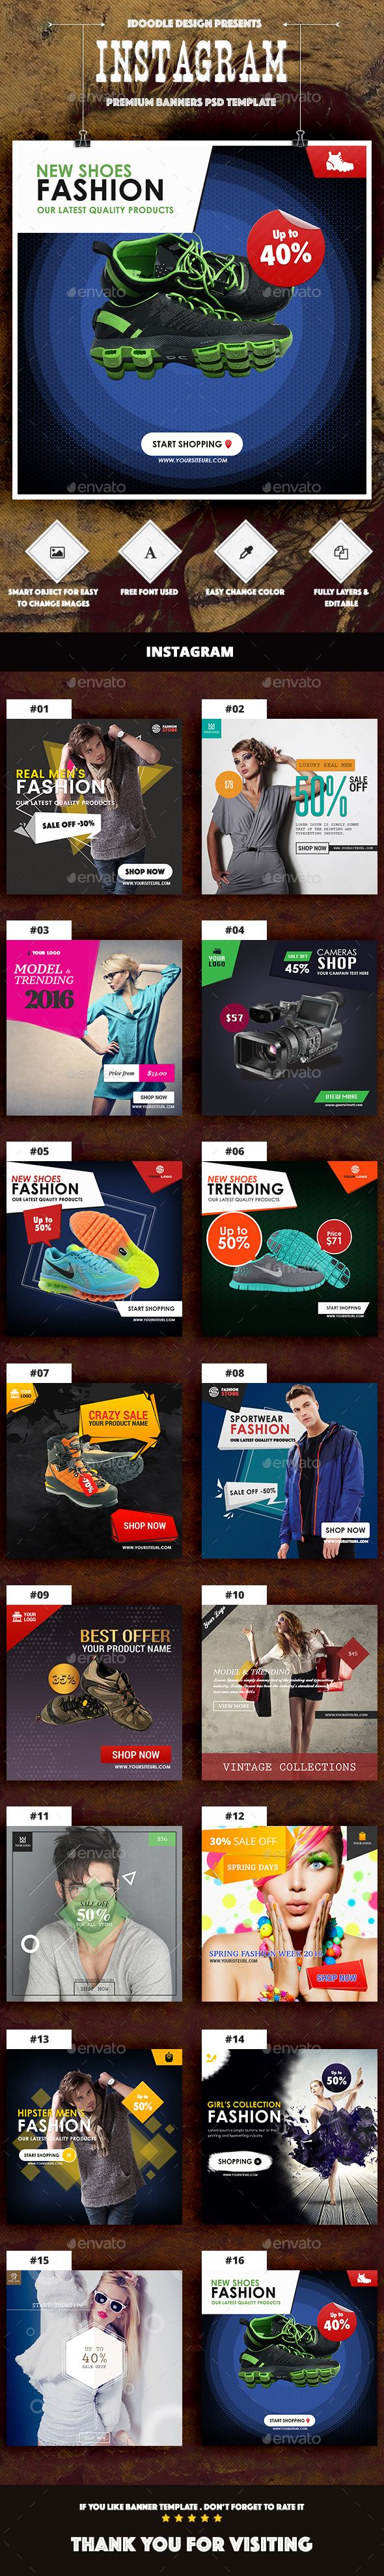 Instagram Product Banners Ads  16 PSD — Photoshop PSD #studio #facebook ads • Available here → https://graphicriver.net/item/instagram-product-banners-ads-16-psd/14526801?ref=pxcr